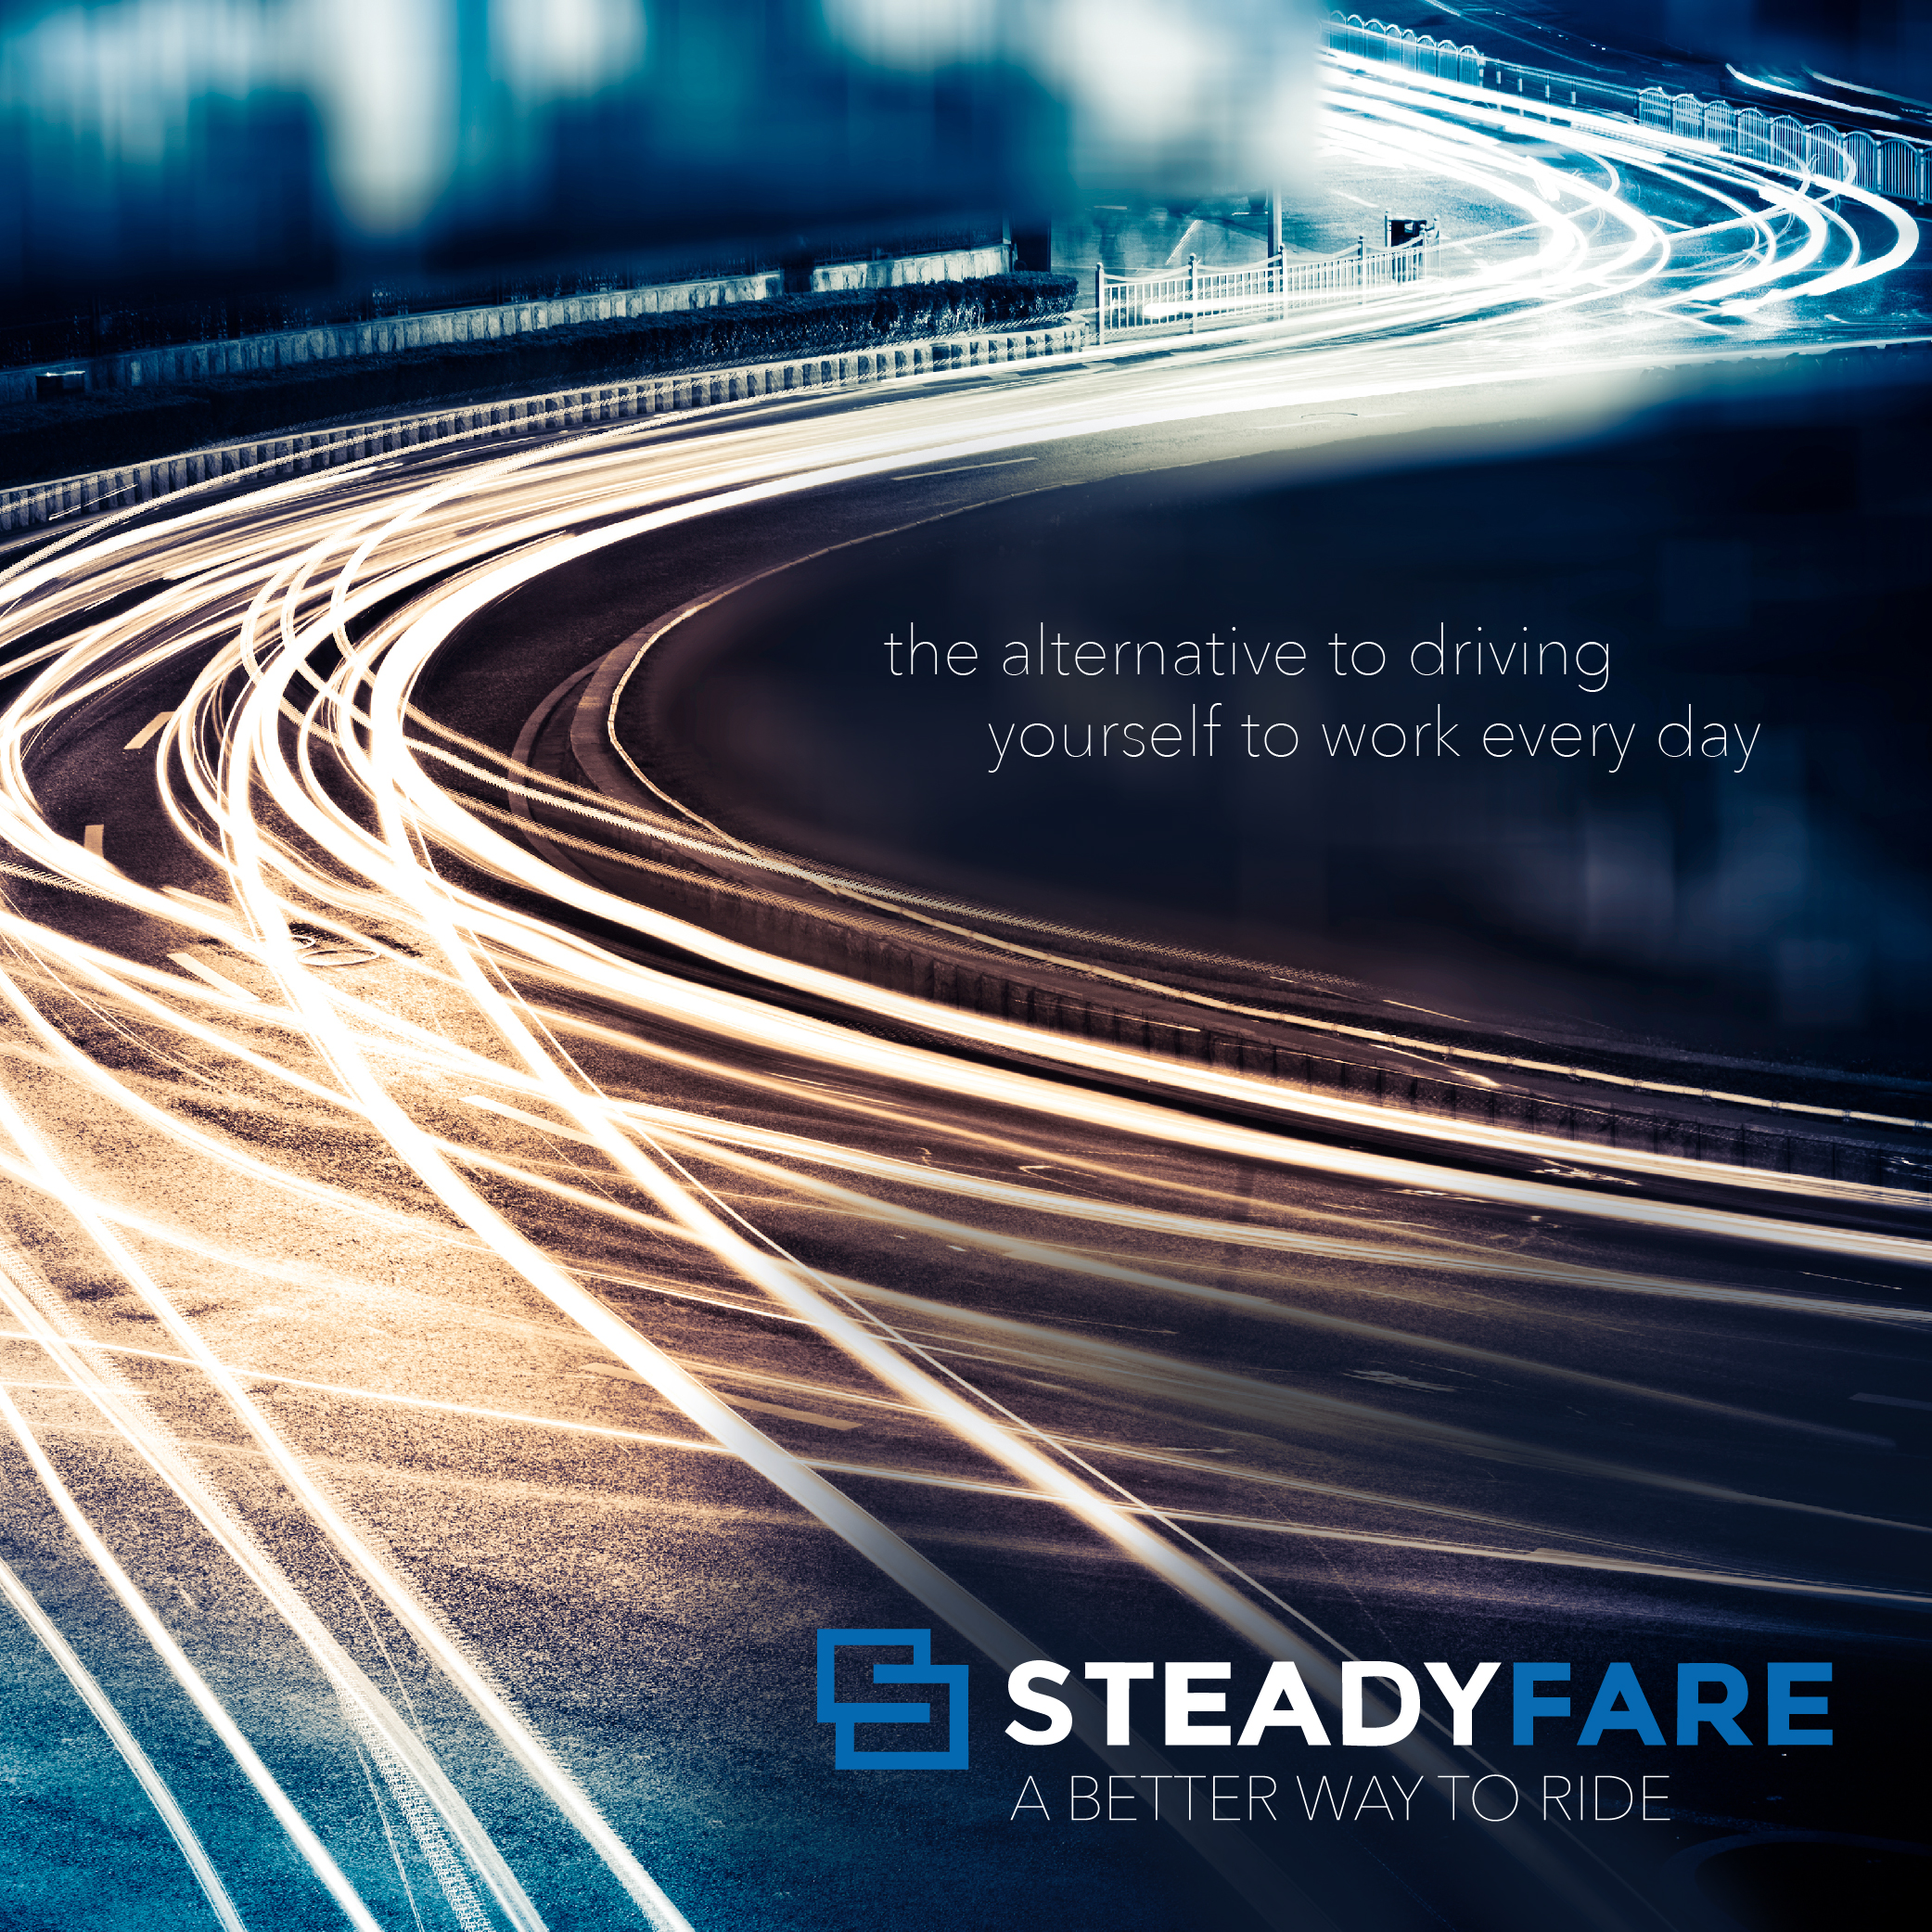 4 Reasons to Commute with SteadyFare